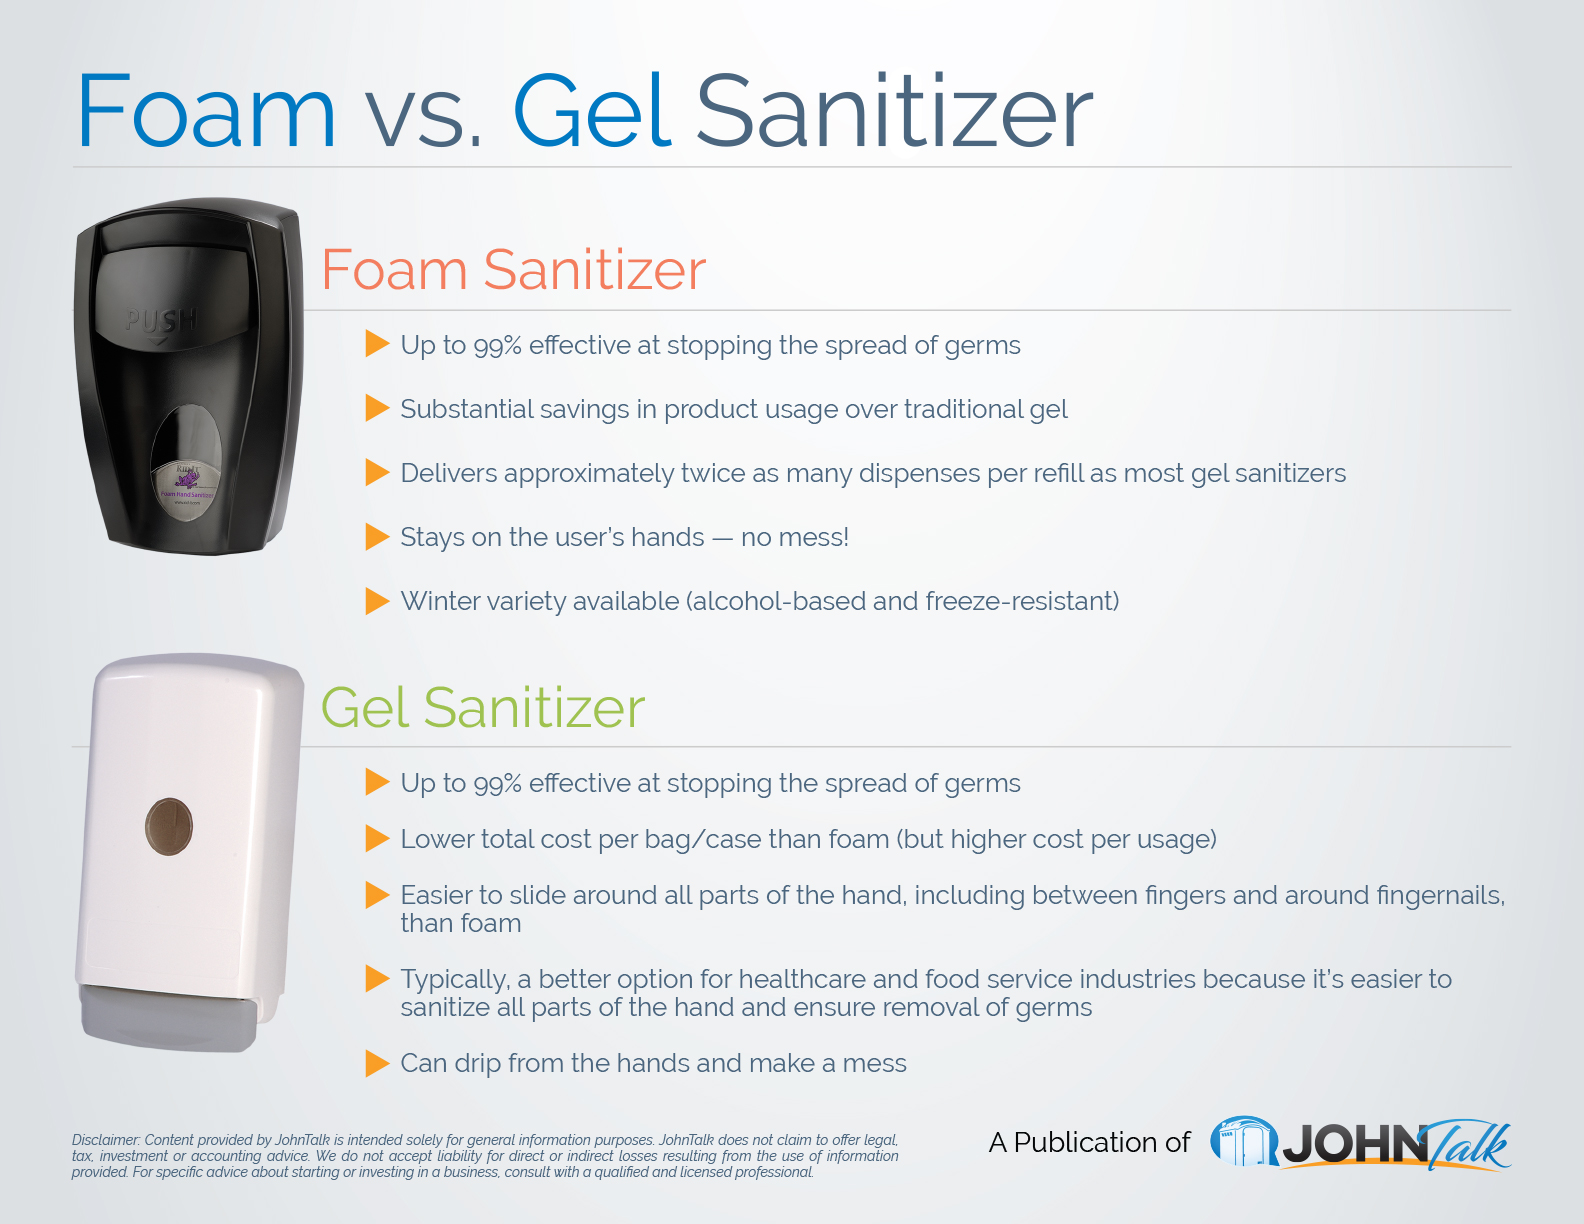 Foam vs Gel Sanitizer